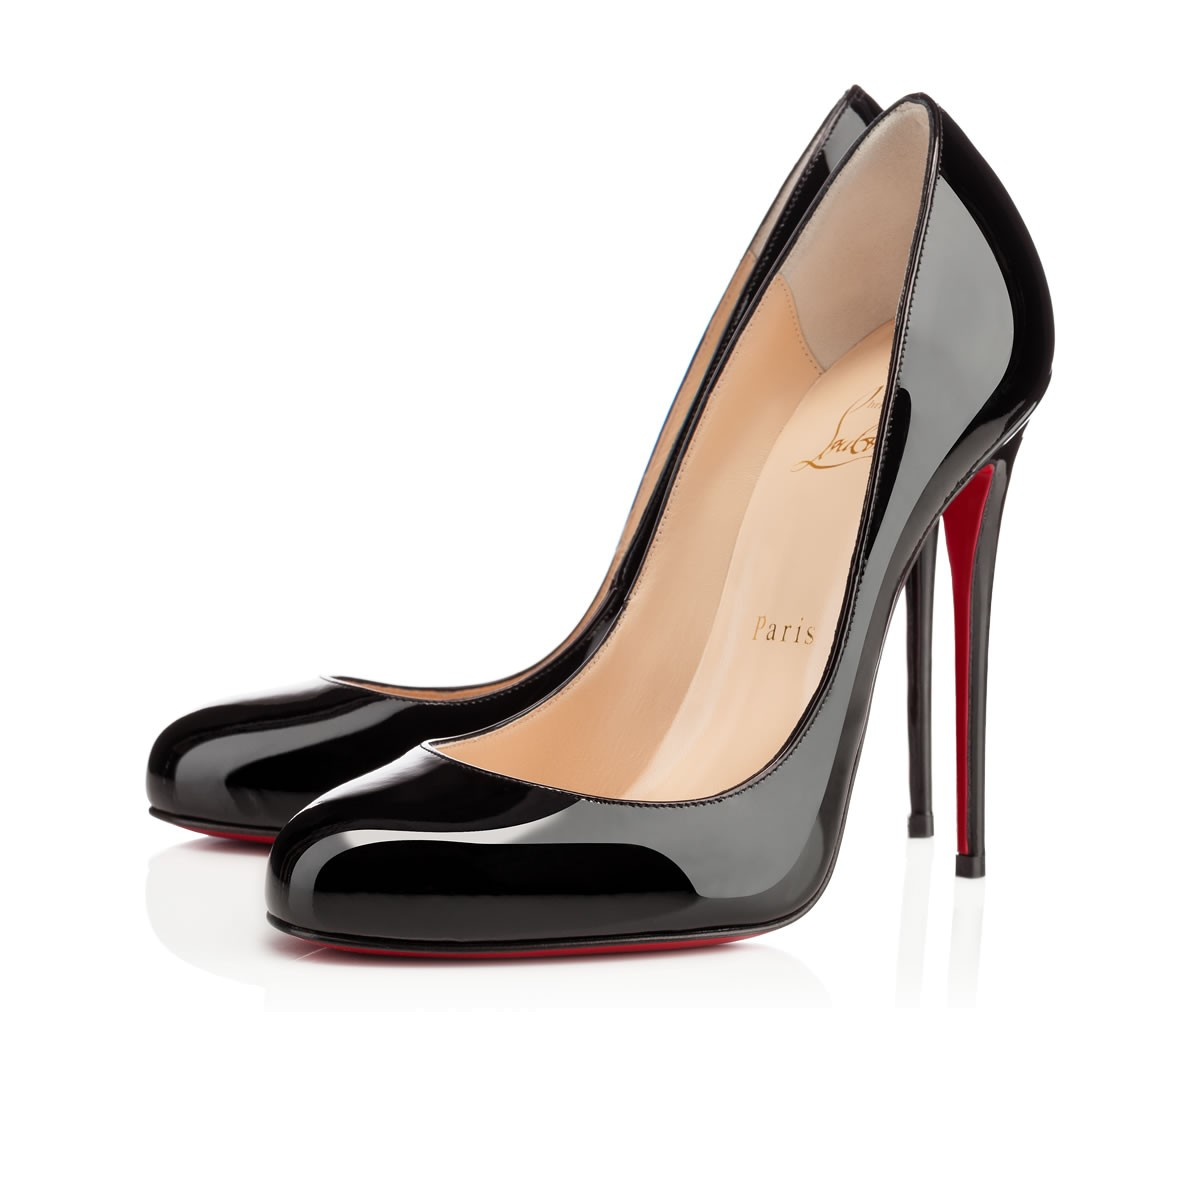 63ebbb74e5e ... usa christian louboutin fifi pumps black patent leather covered heels  960aa d4e1d